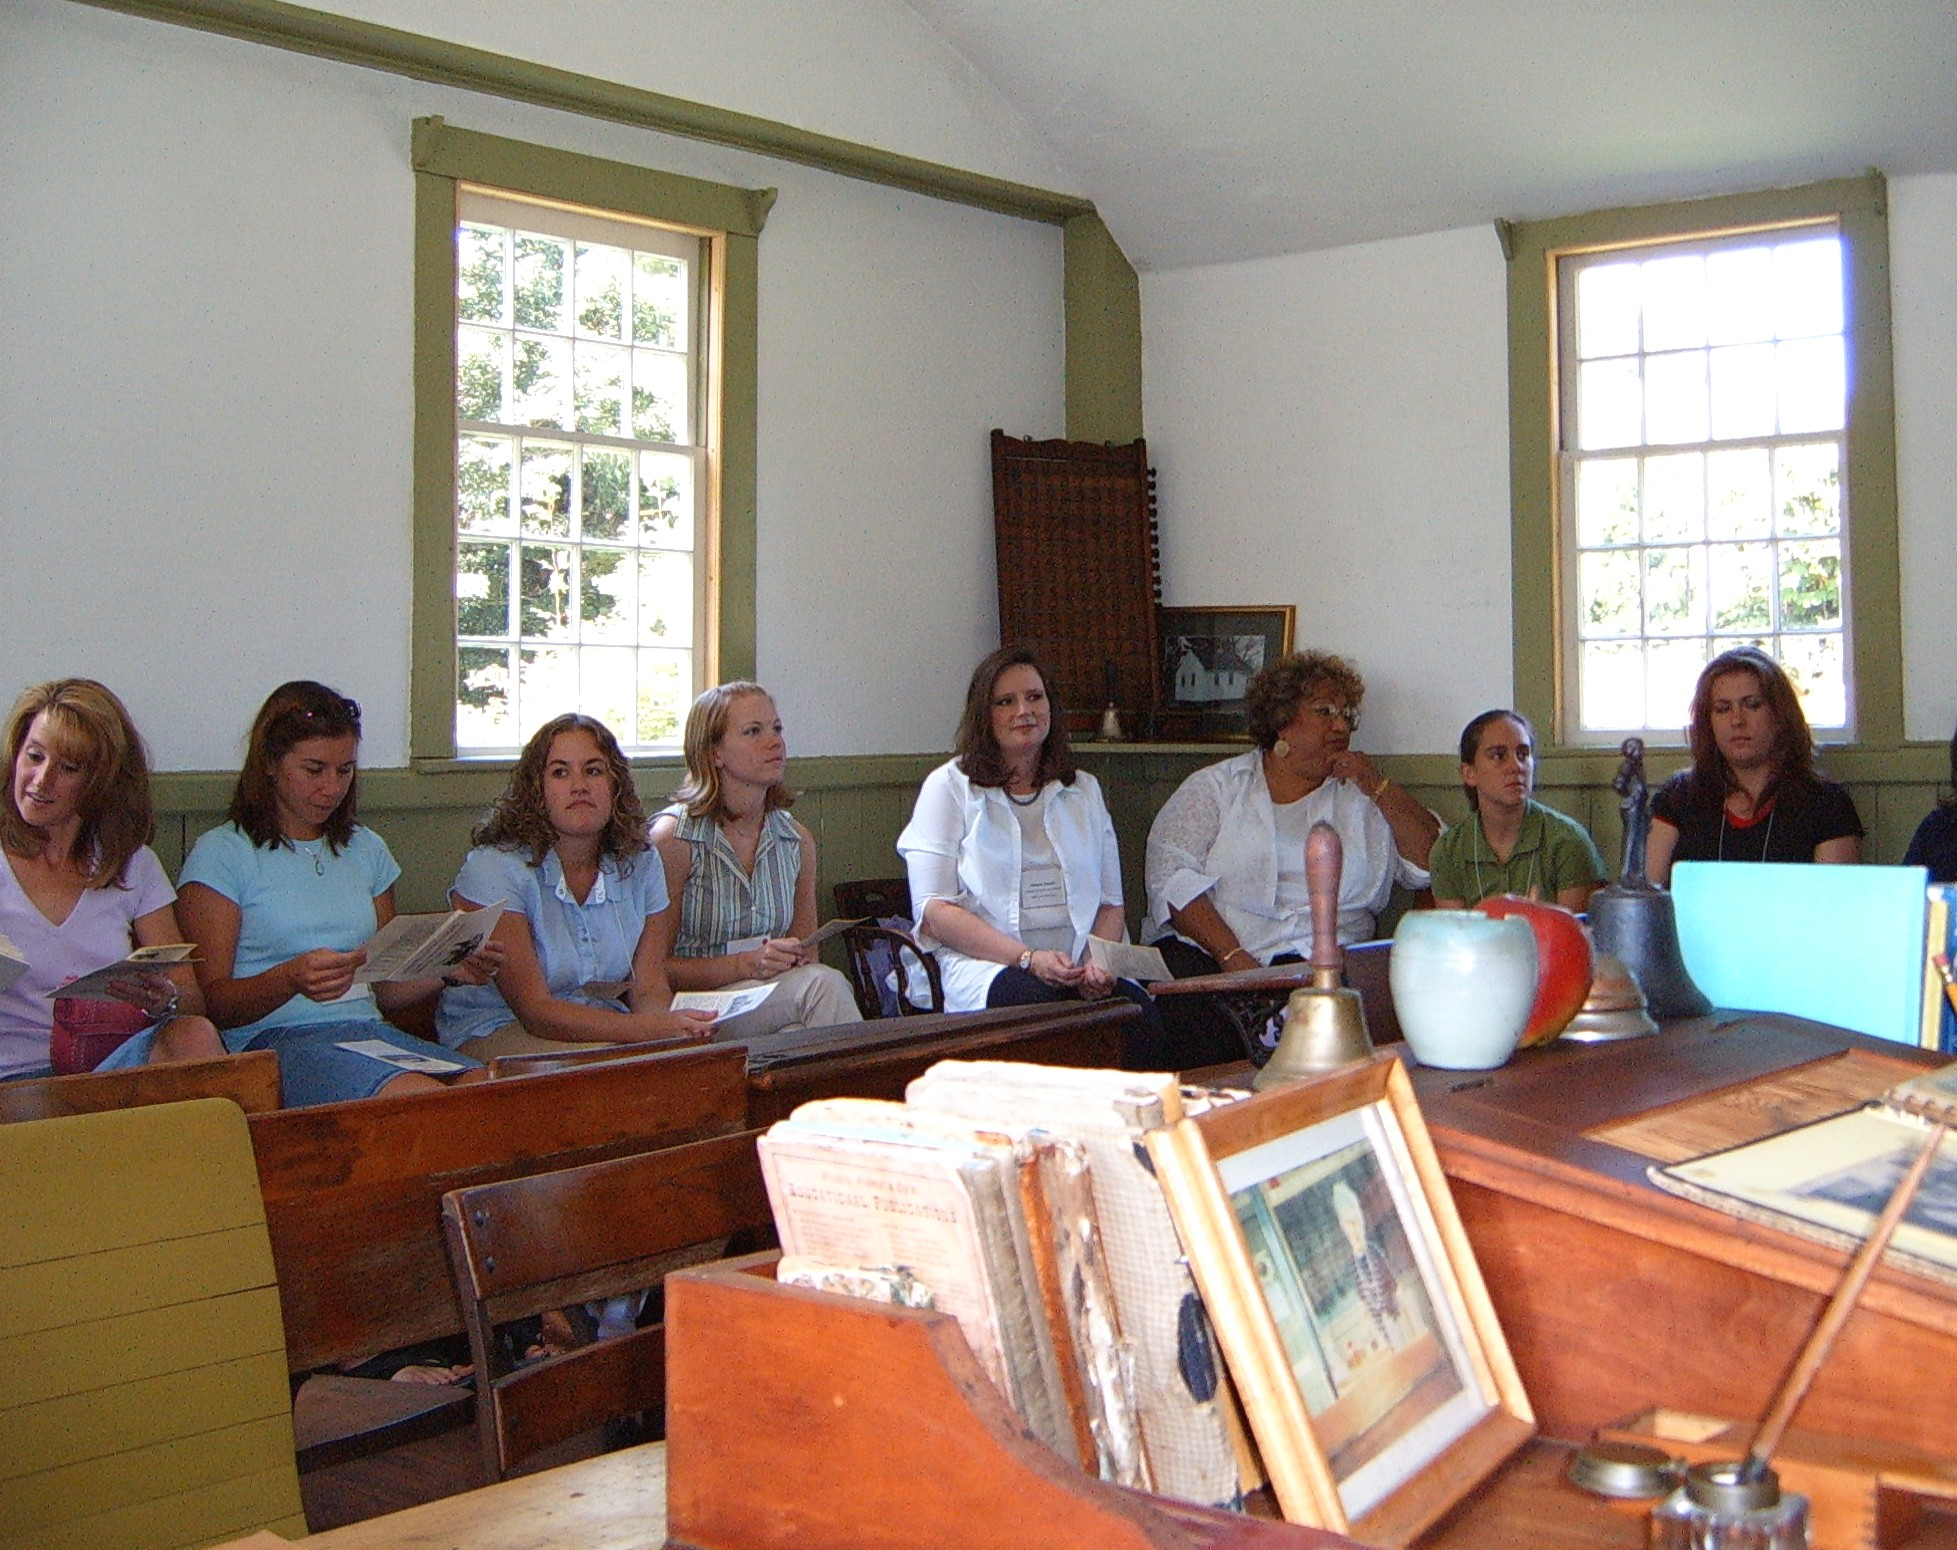 Teacher training being held in the one-room Gull Schoolhouse in Hebron, Connecticut